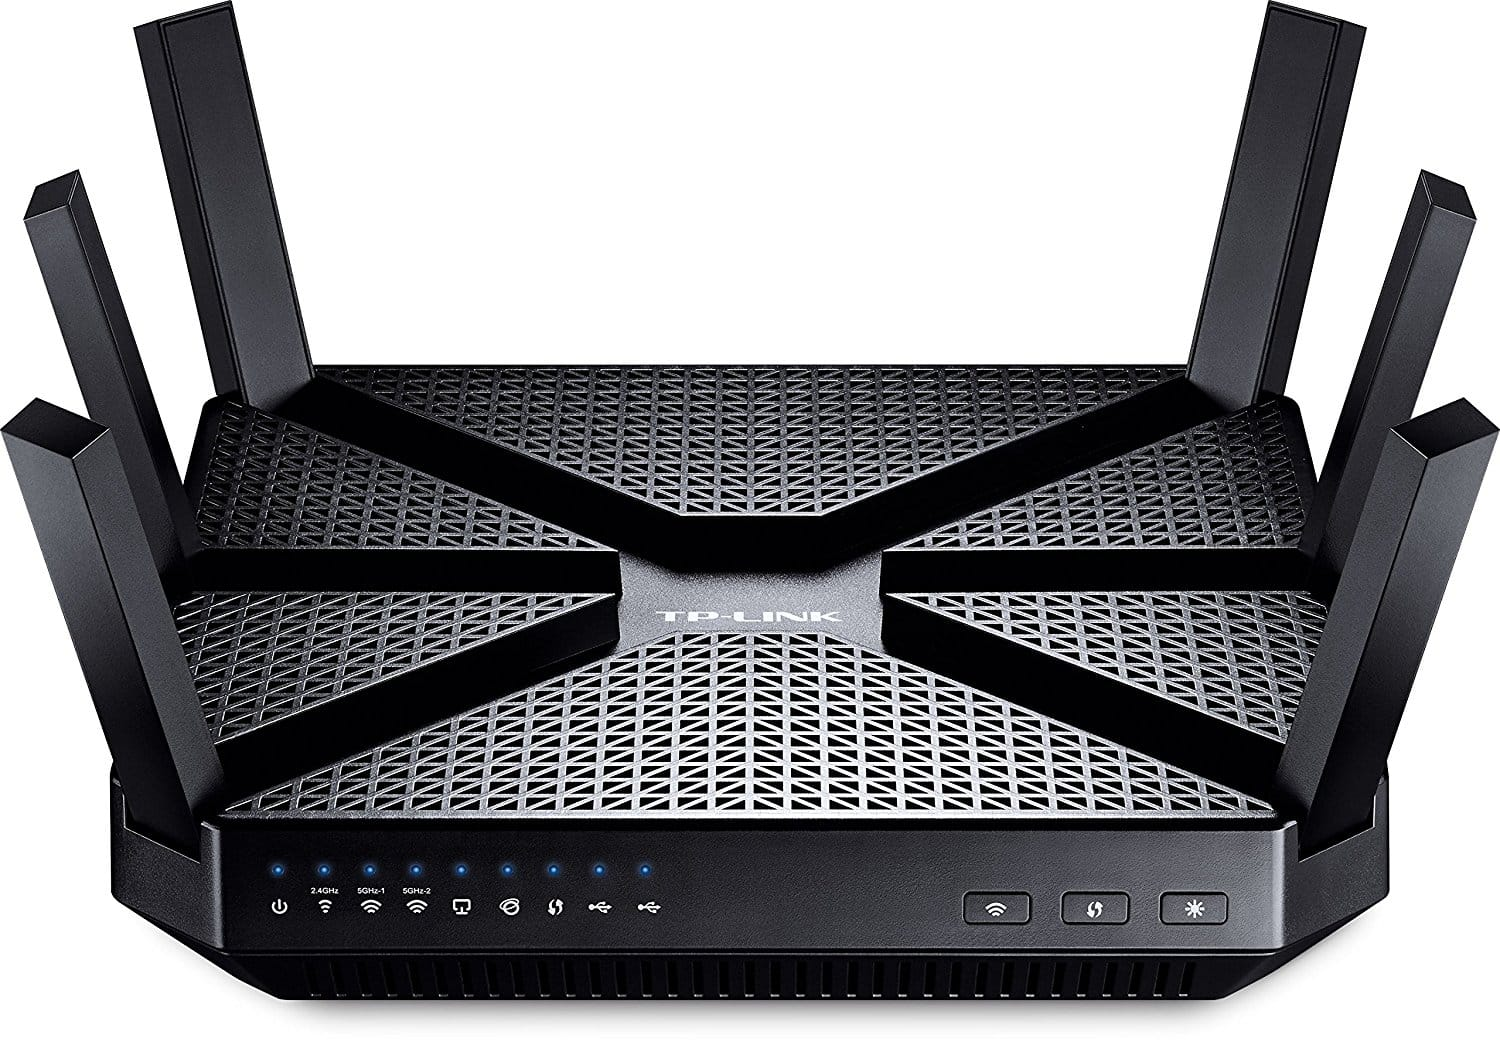 TP-Link AC3200 Wireless Wi-Fi Tri-Band Gigabit Router (Archer C3200) $119.99 - In stock - New - Amazon